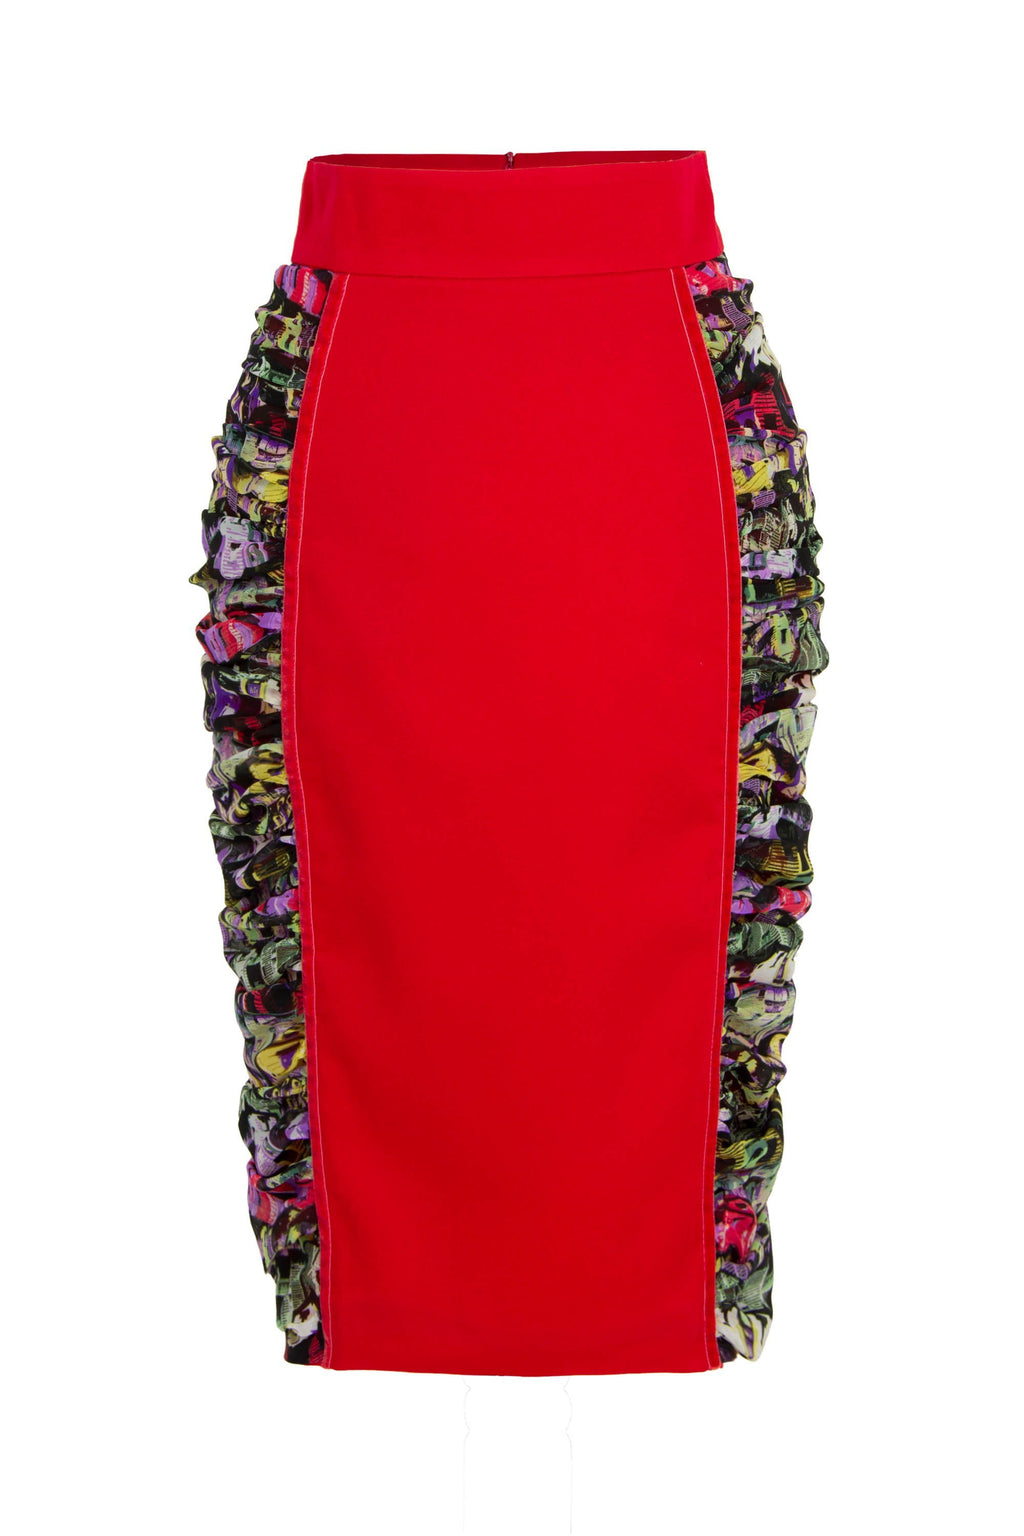 Centre Stage Ruched Bodycon Midi Skirt - Red - Tia Dorraine London